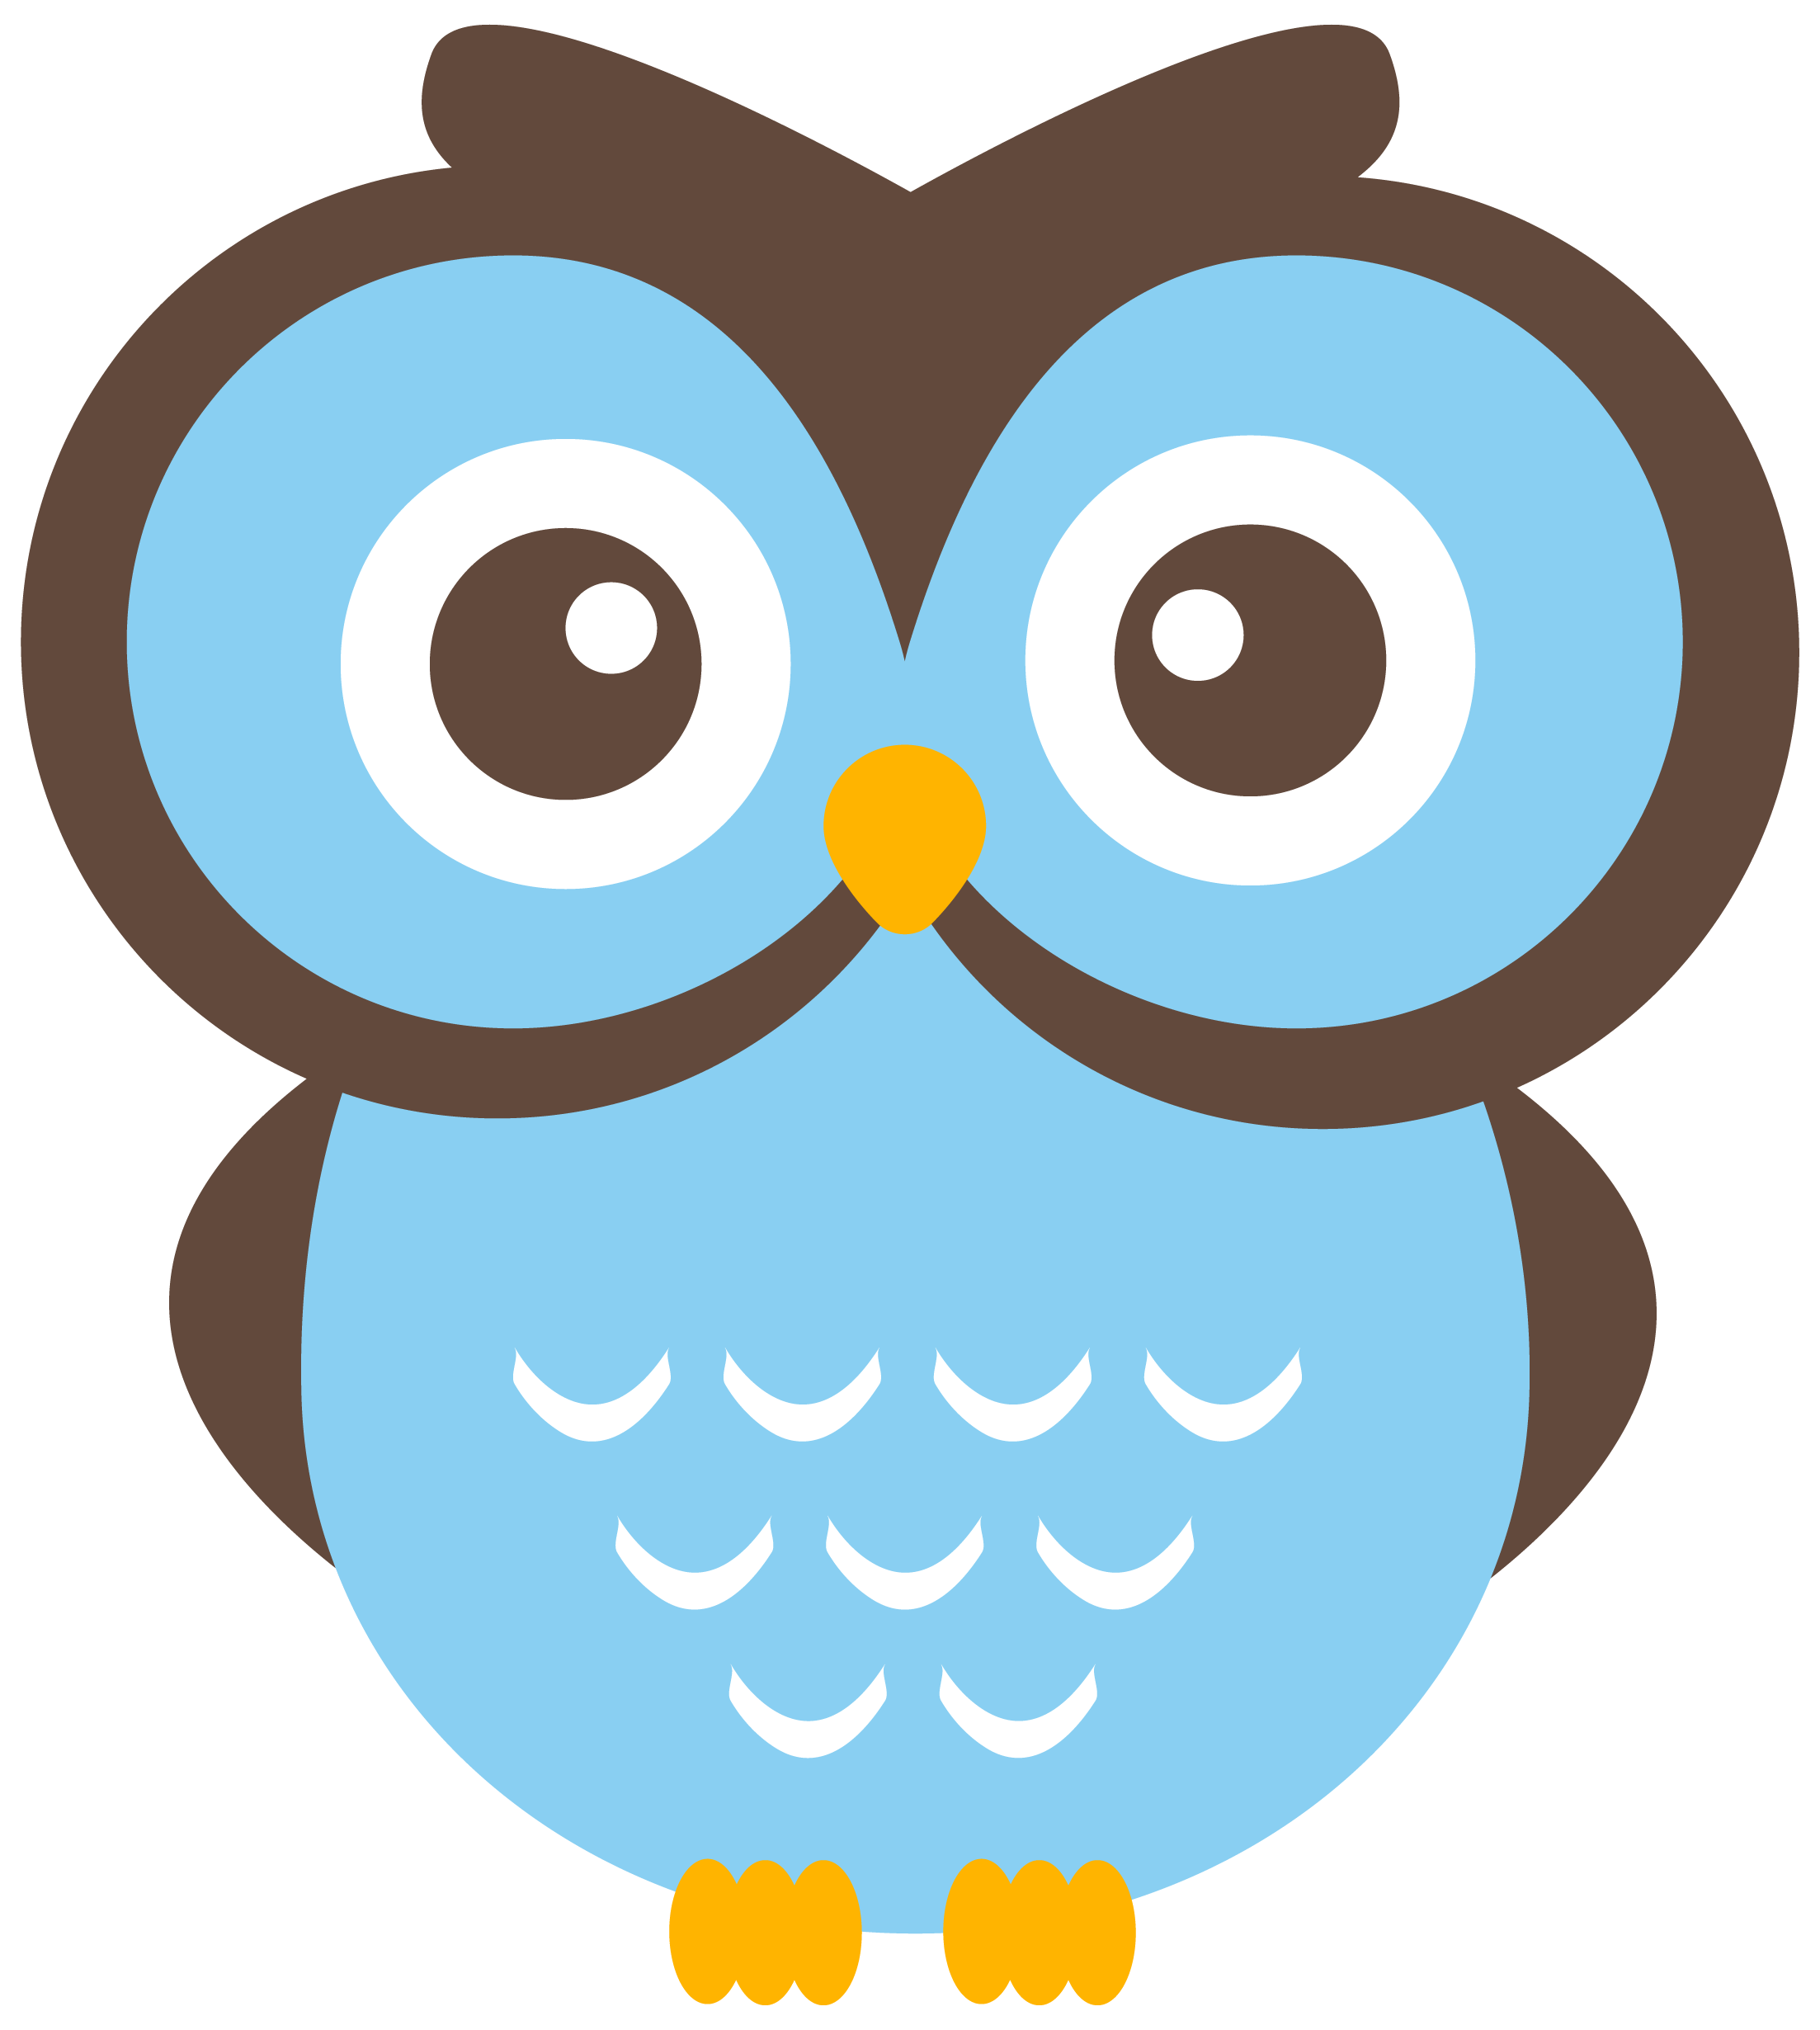 Cute png free image. Food clipart owl